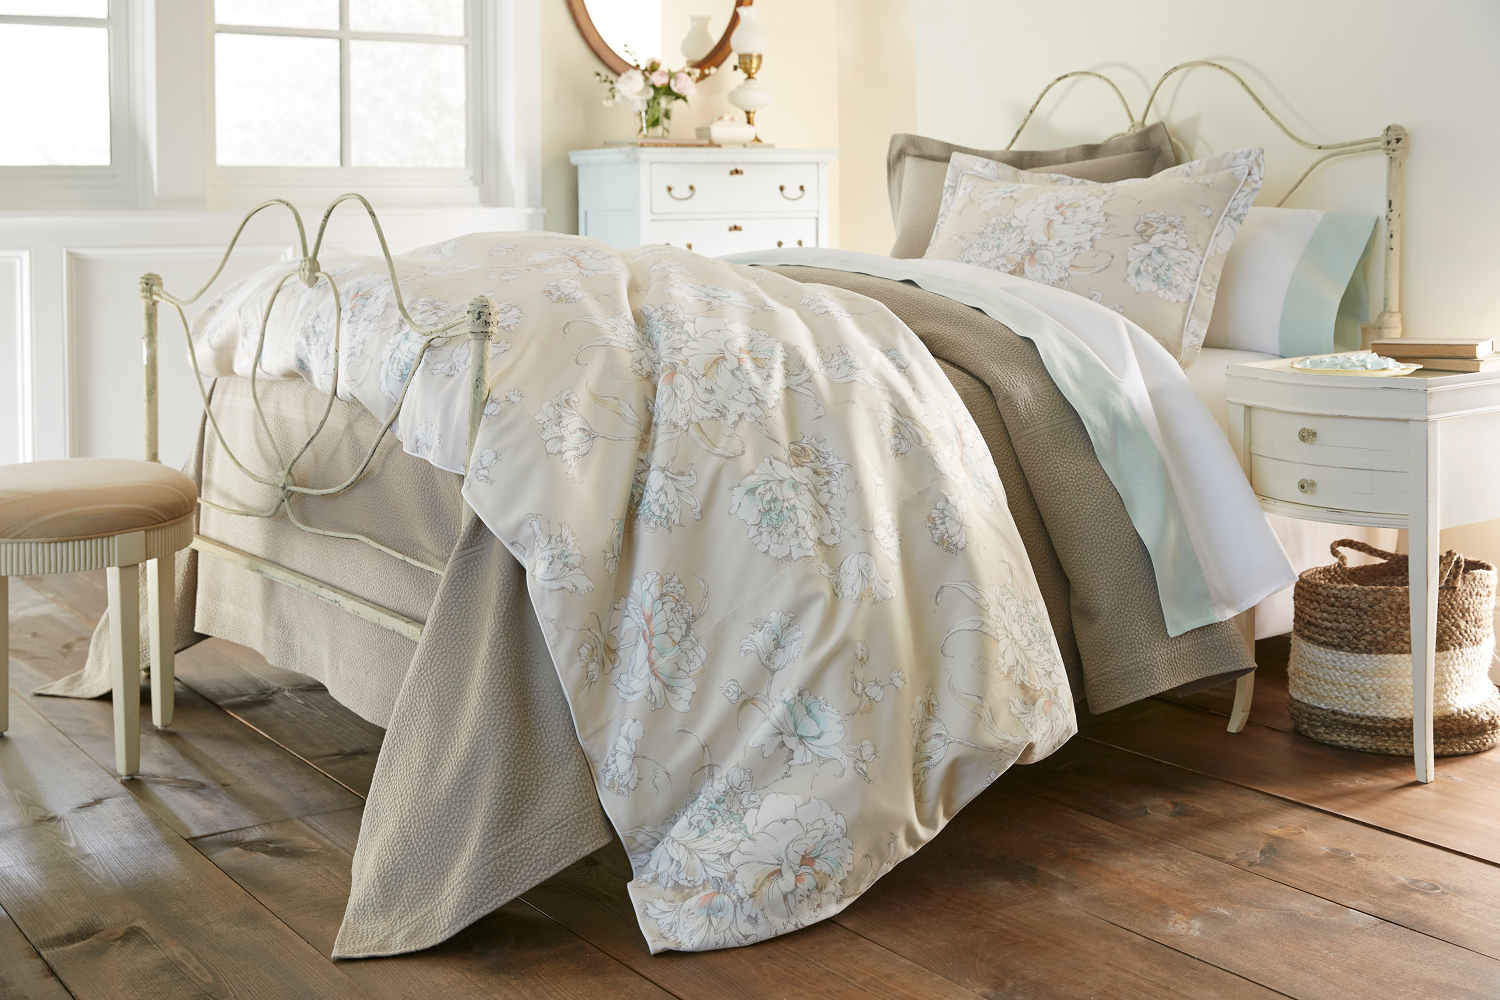 Peacock Alley Flora Duvet And Shams And Decorative Pillows